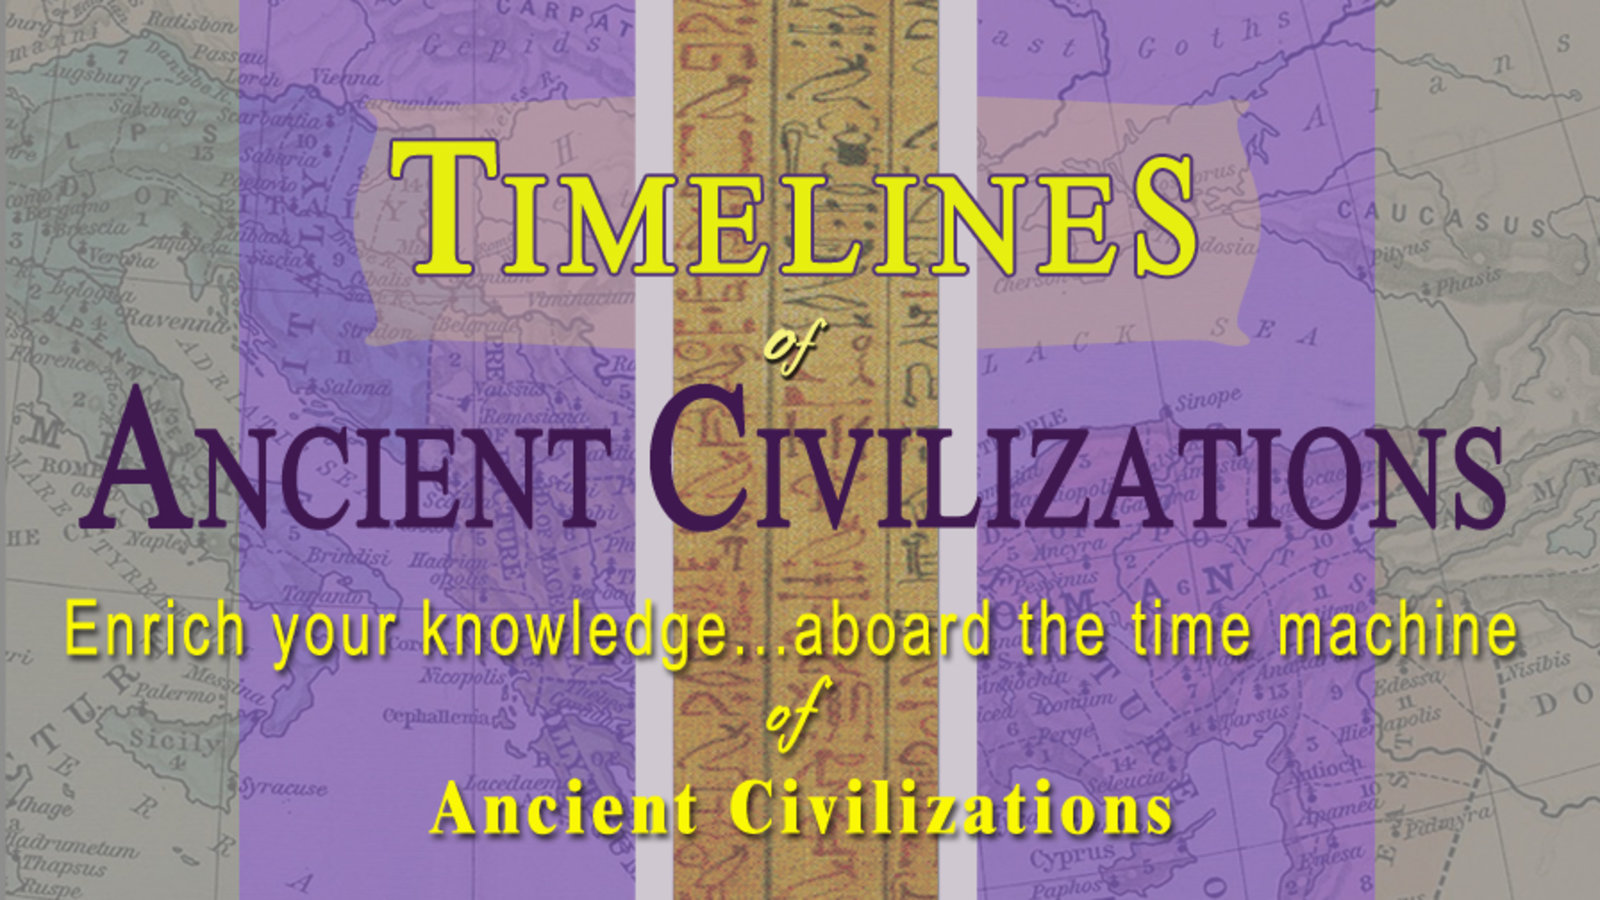 photo about Ancient Civilizations Timeline Printable identified as Timelines of Historical Civilizations Sequence Kanopy